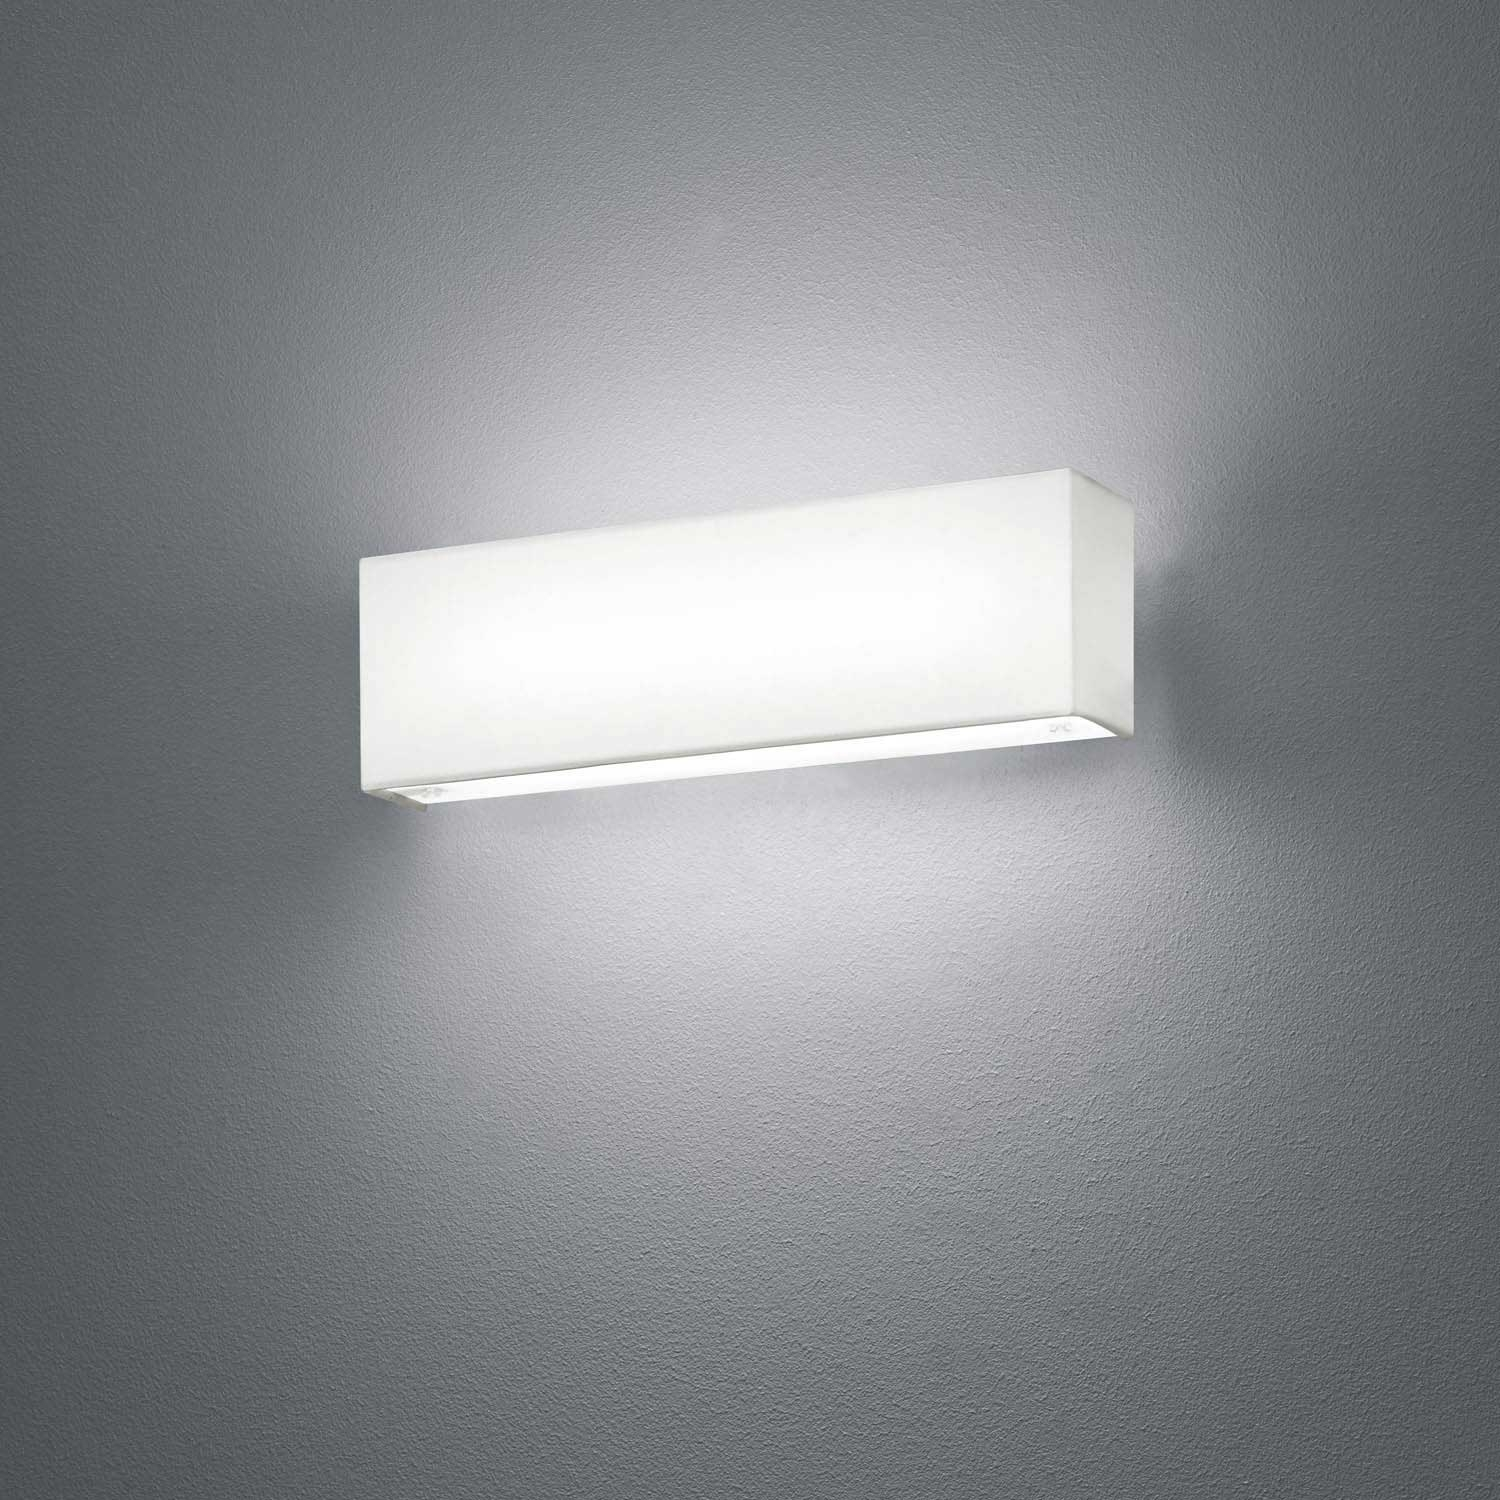 Aplique de pared led carlo 6w blanco for Apliques para subida de escalera